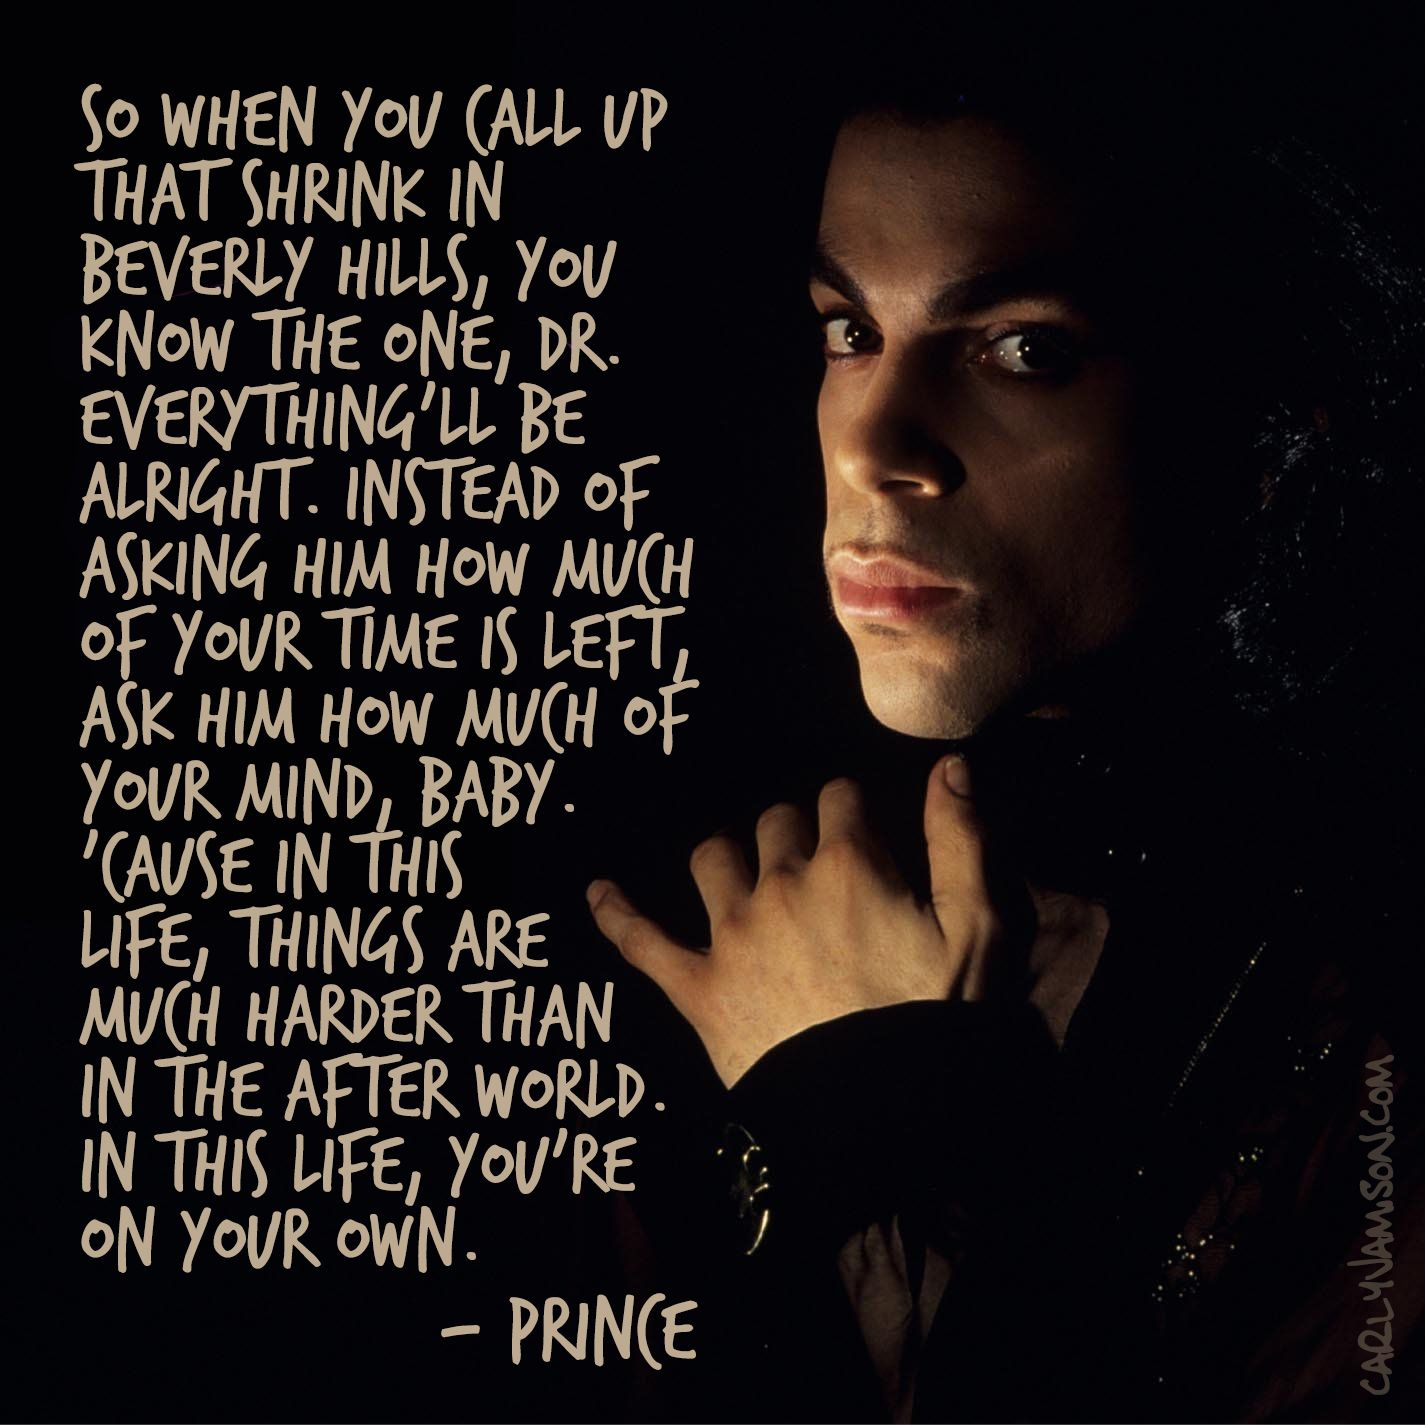 Words of Prince Prince lyrics, Prince quotes, Prince